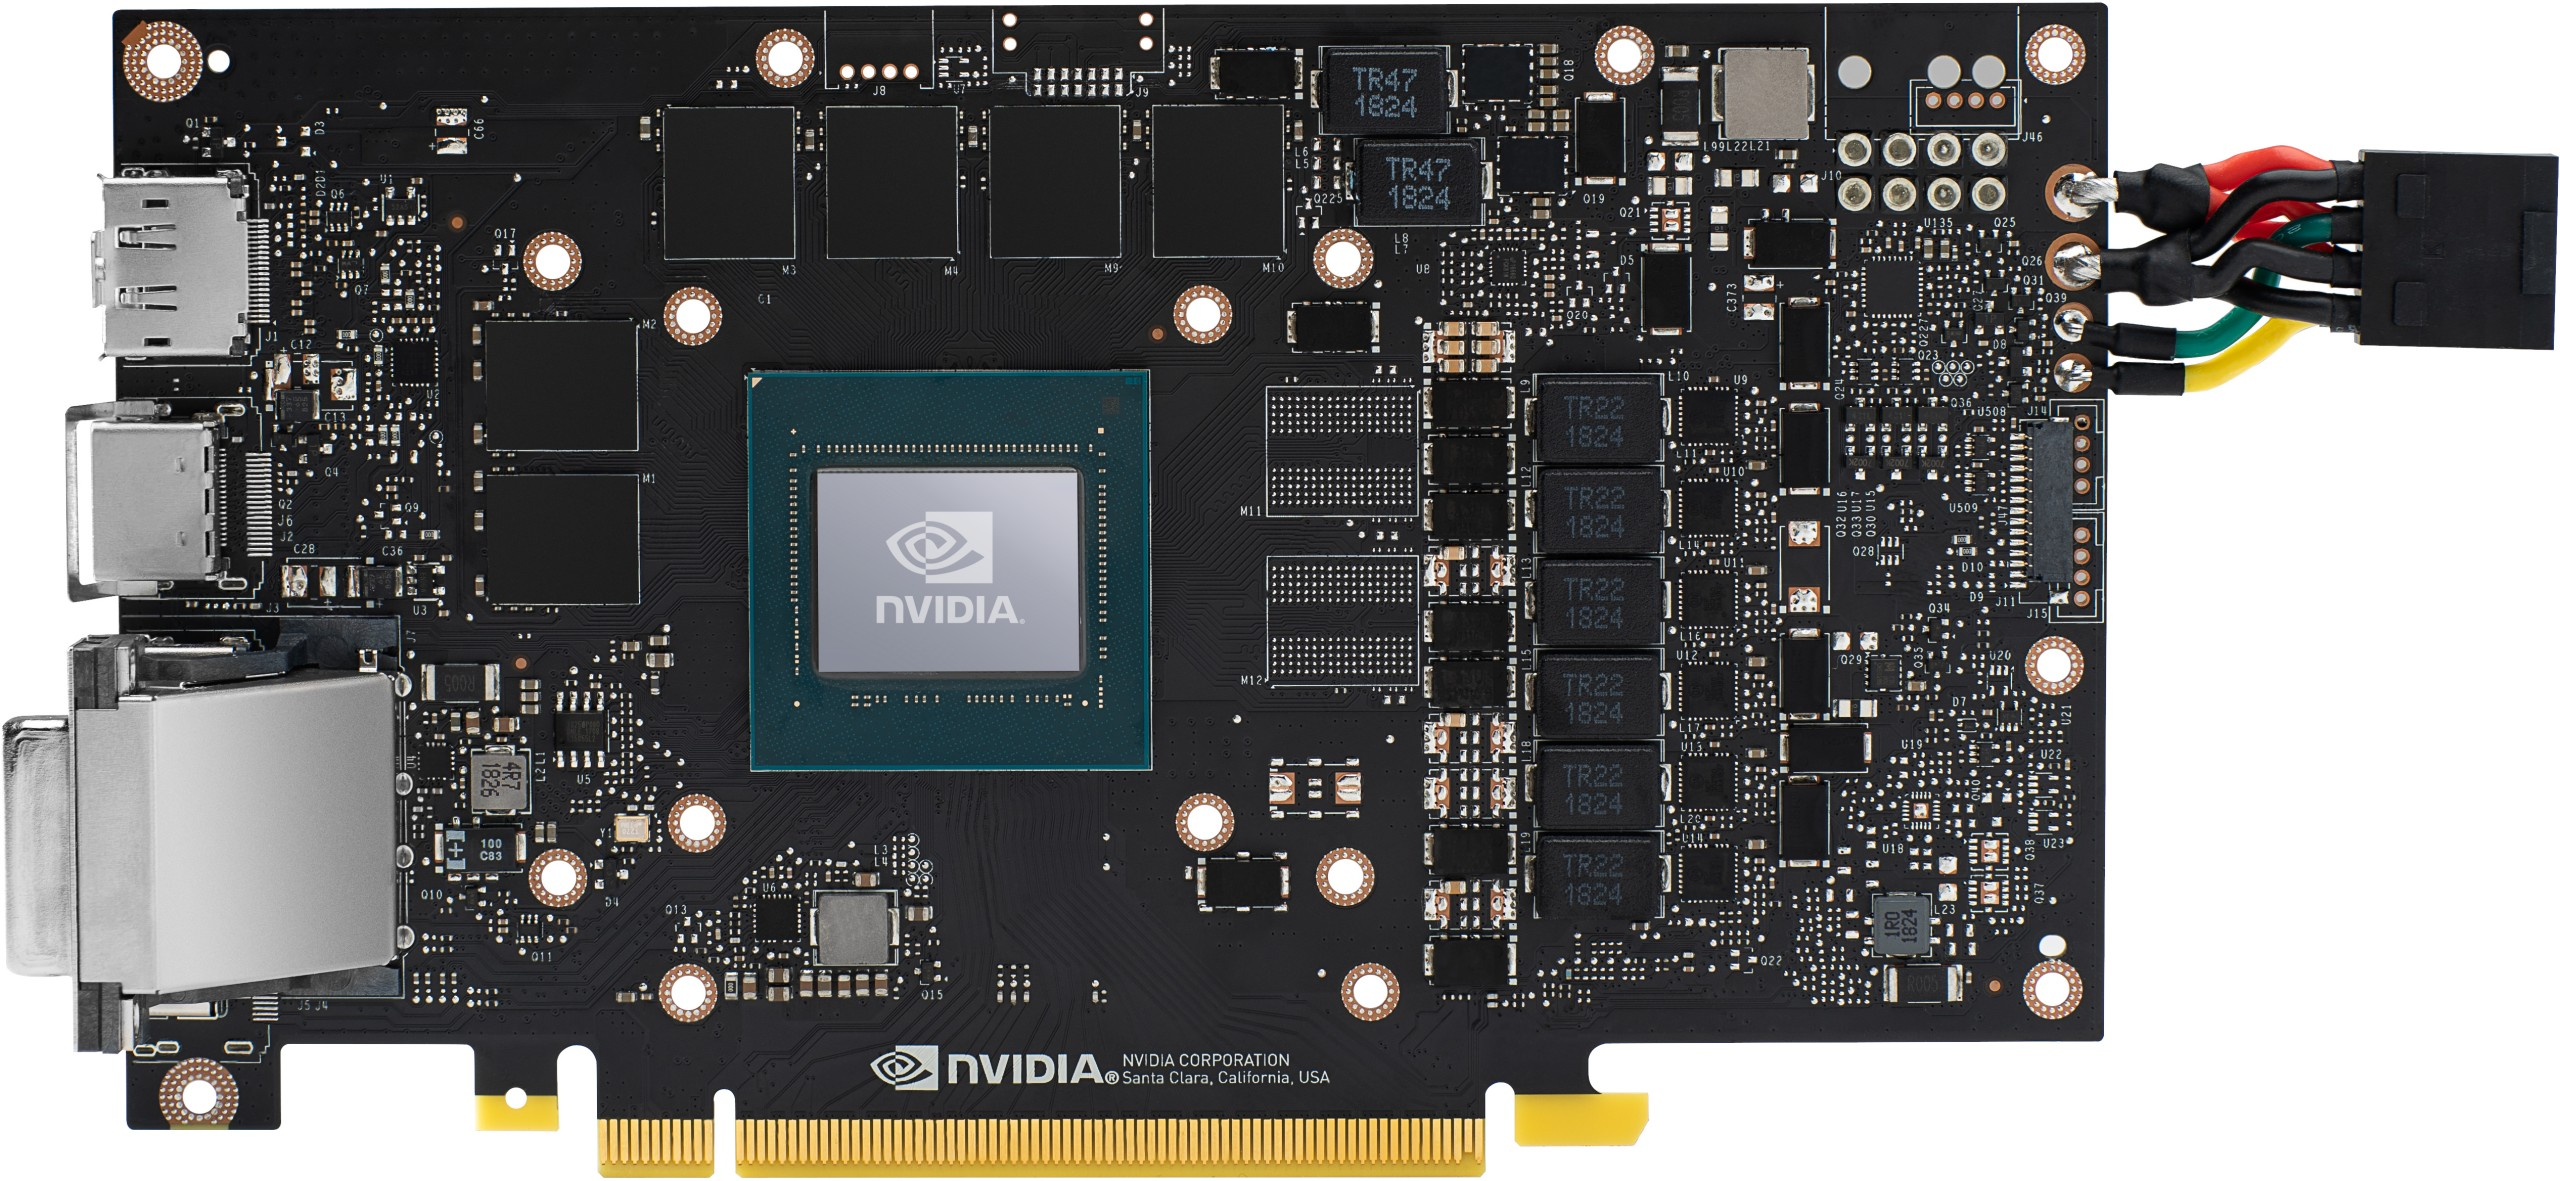 Nvidia GeForce RTX 2060 FE in review - does this card set new ...